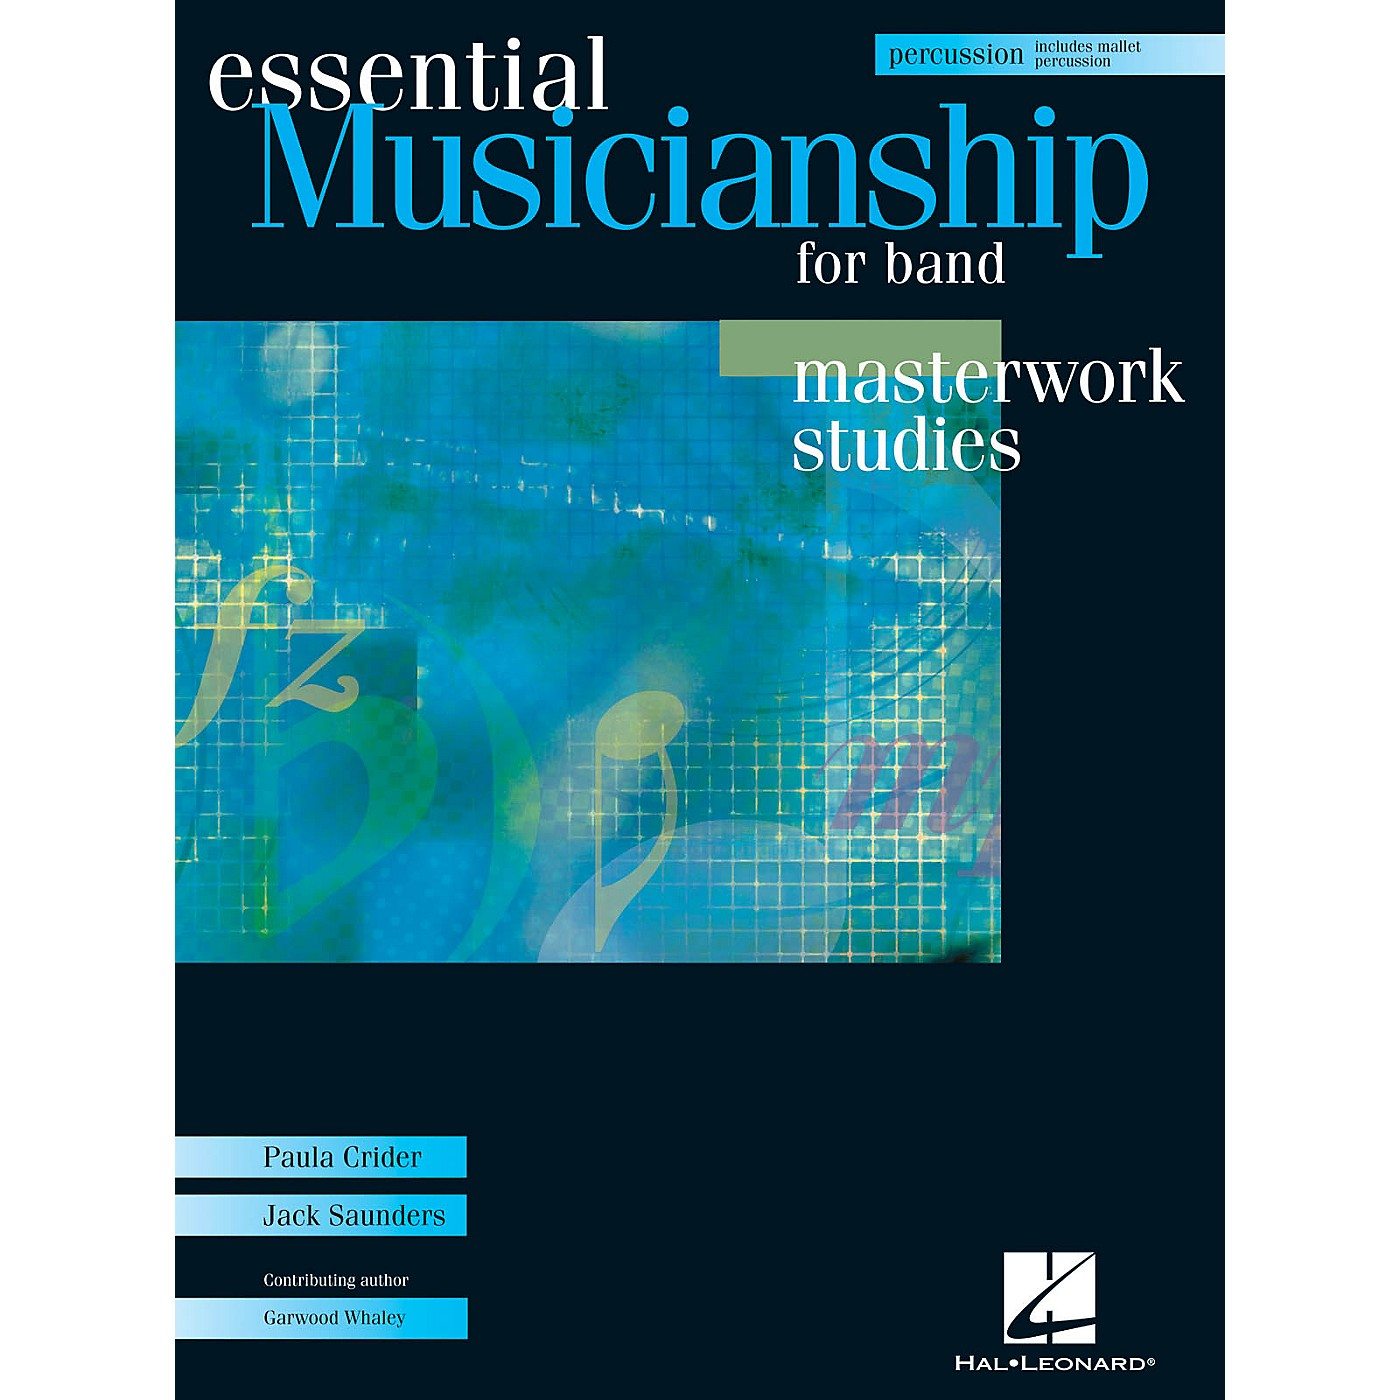 Hal Leonard Essential Musicianship for Band - Masterwork Studies (Percussion/Mallet Percussion) Concert Band thumbnail